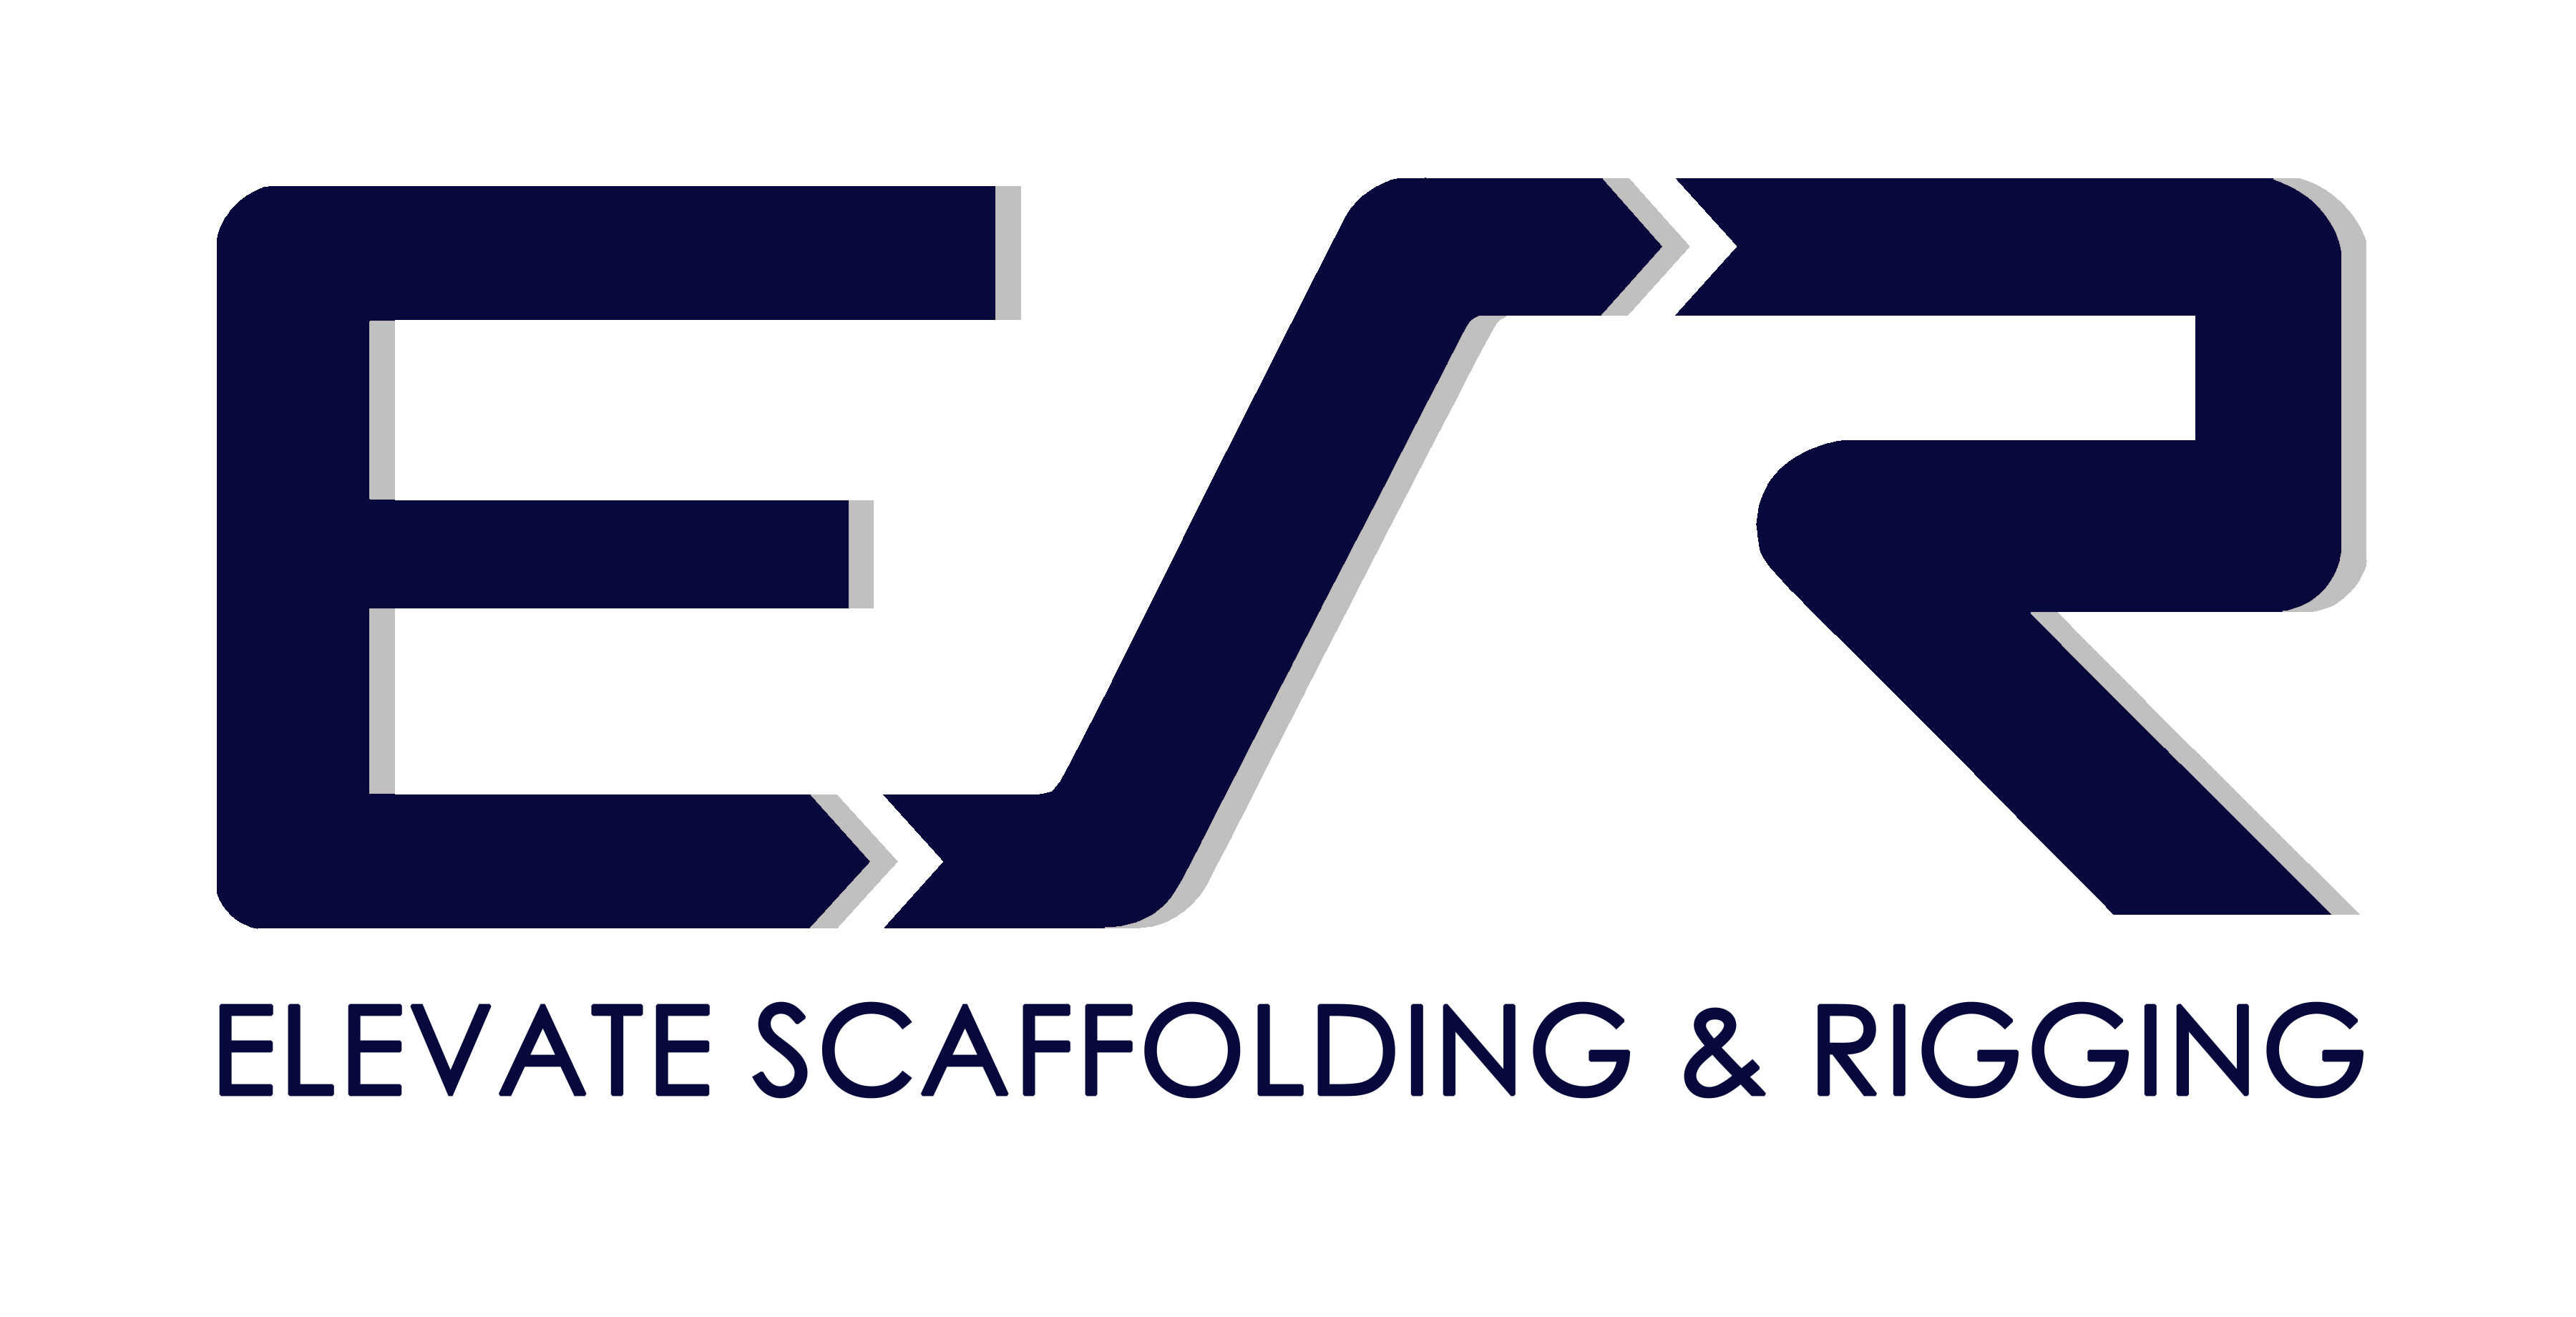 Logo Design - Elevate Scaffolding and Rigging